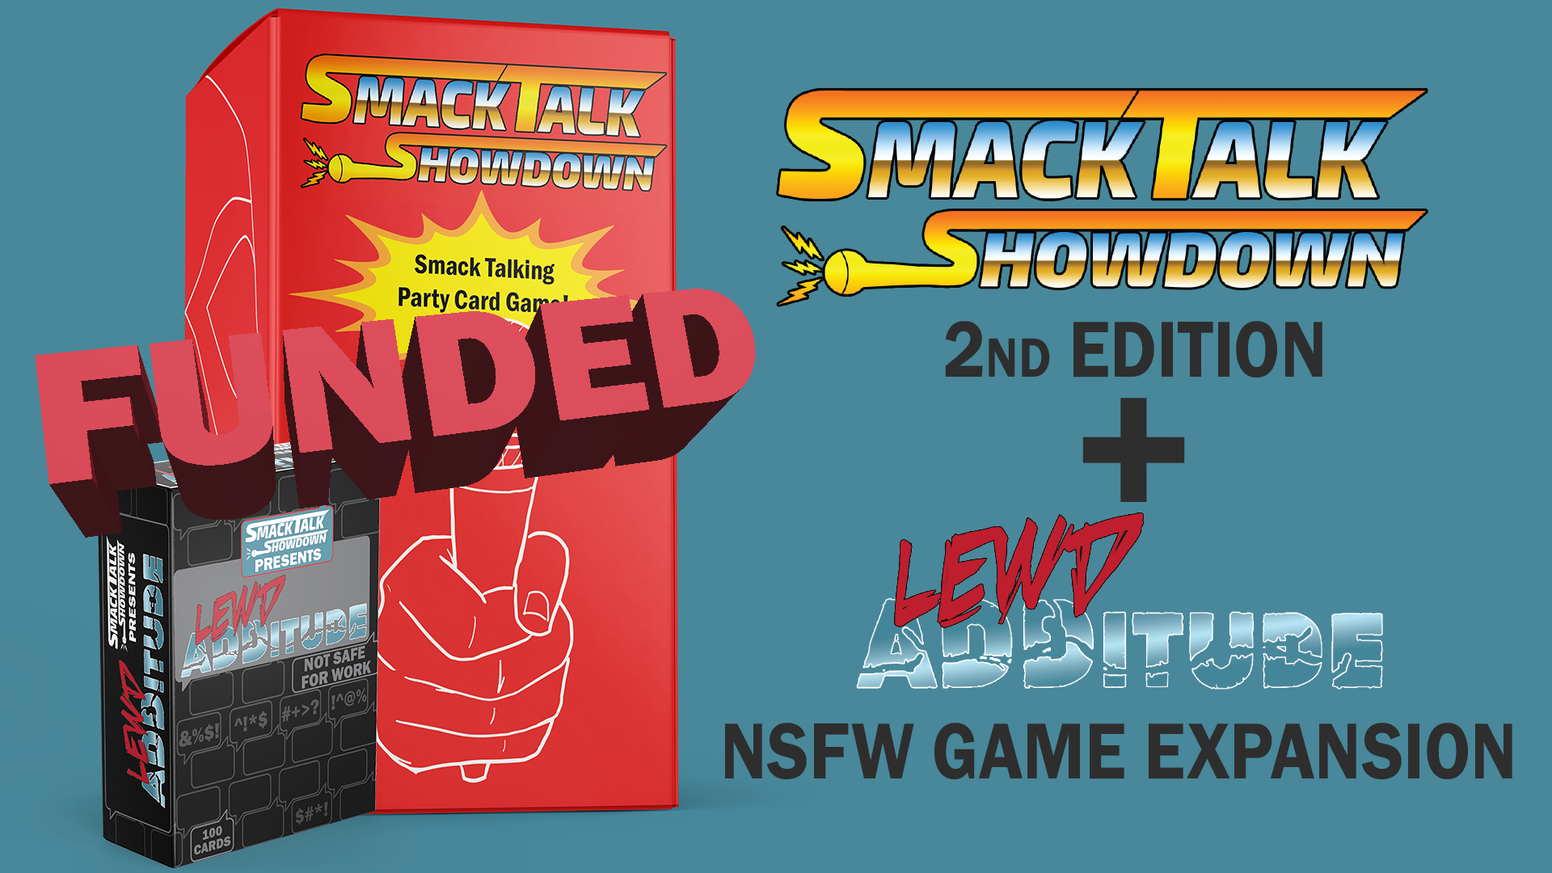 The EXTREME expansion to the smack talking party card game and a new and improved 2nd edition of the base game.